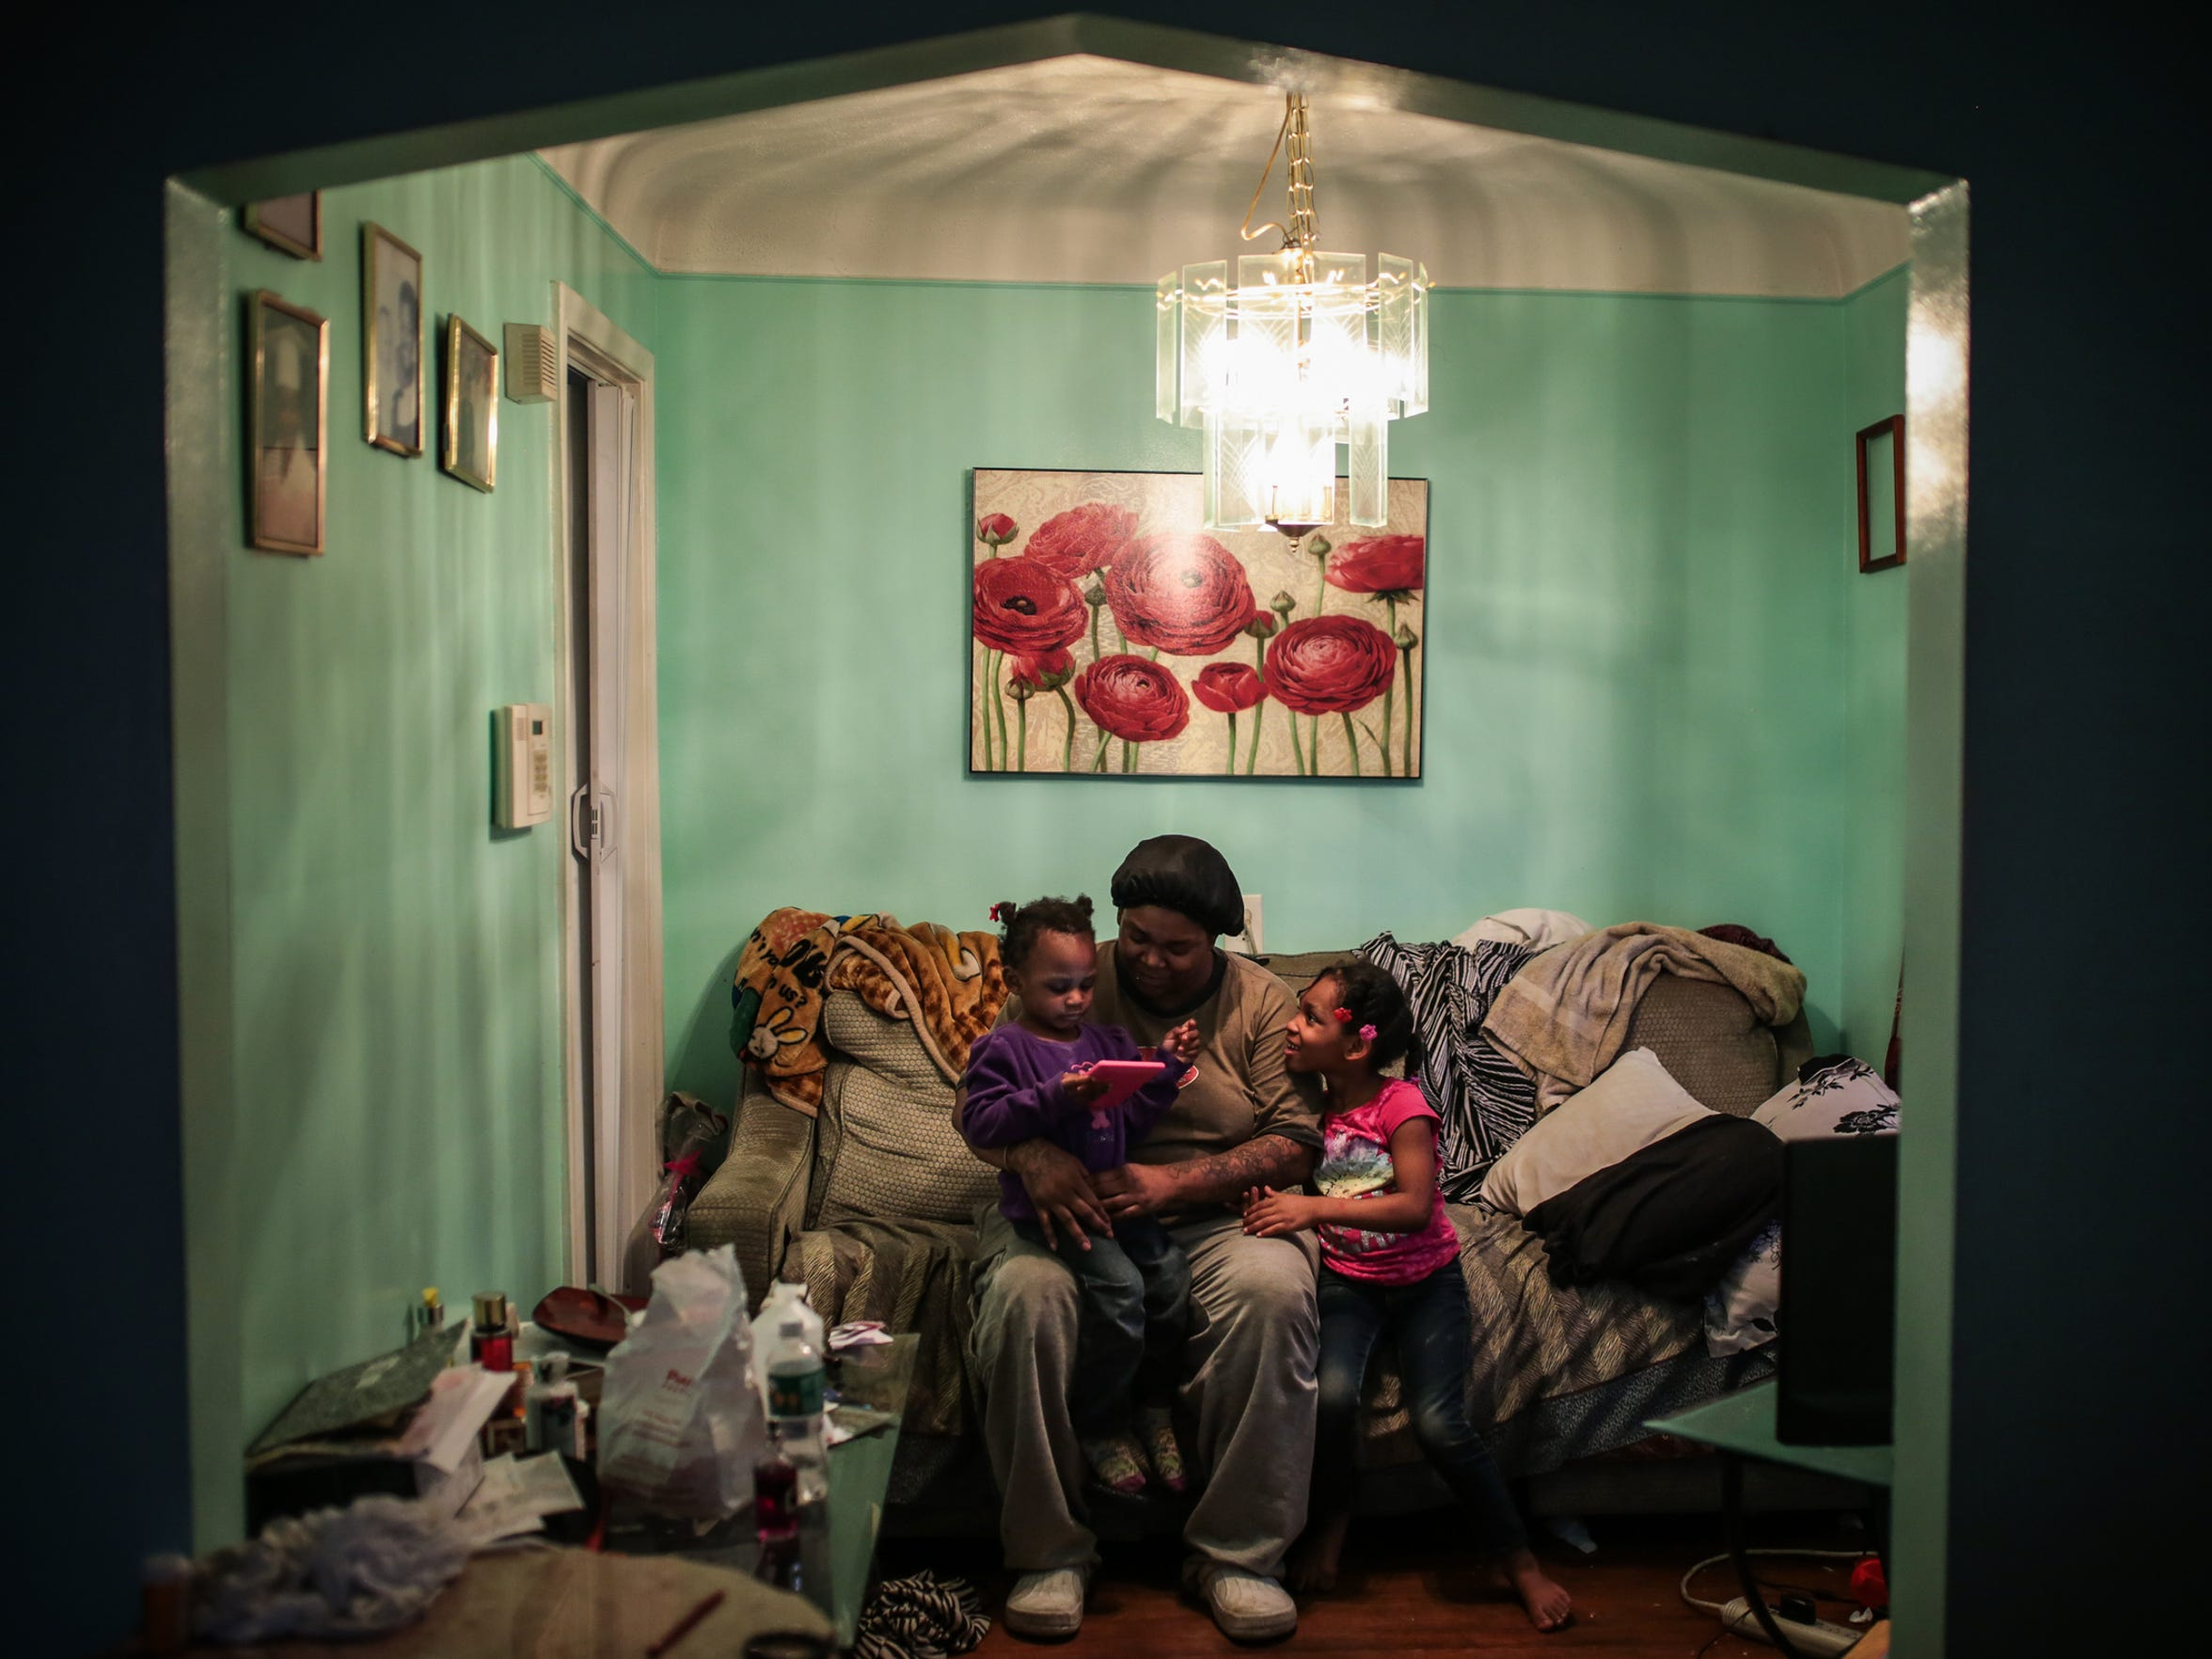 "Tatiana Young, 29, of Detroit, sits in a living room alcove with her two daughters, Miyako Young, 5, right, and Malaysia Foley, 2, on March 7, 2017. Tatiana shares the home with her four children, an elderly mother, an elderly aunt and an older cousin. Although they live in what is statistically one of Detroit's most dangerous neighborhoods, Tatiana said her block is relatively safe. ""The neighborhood is not that bad,""she said."